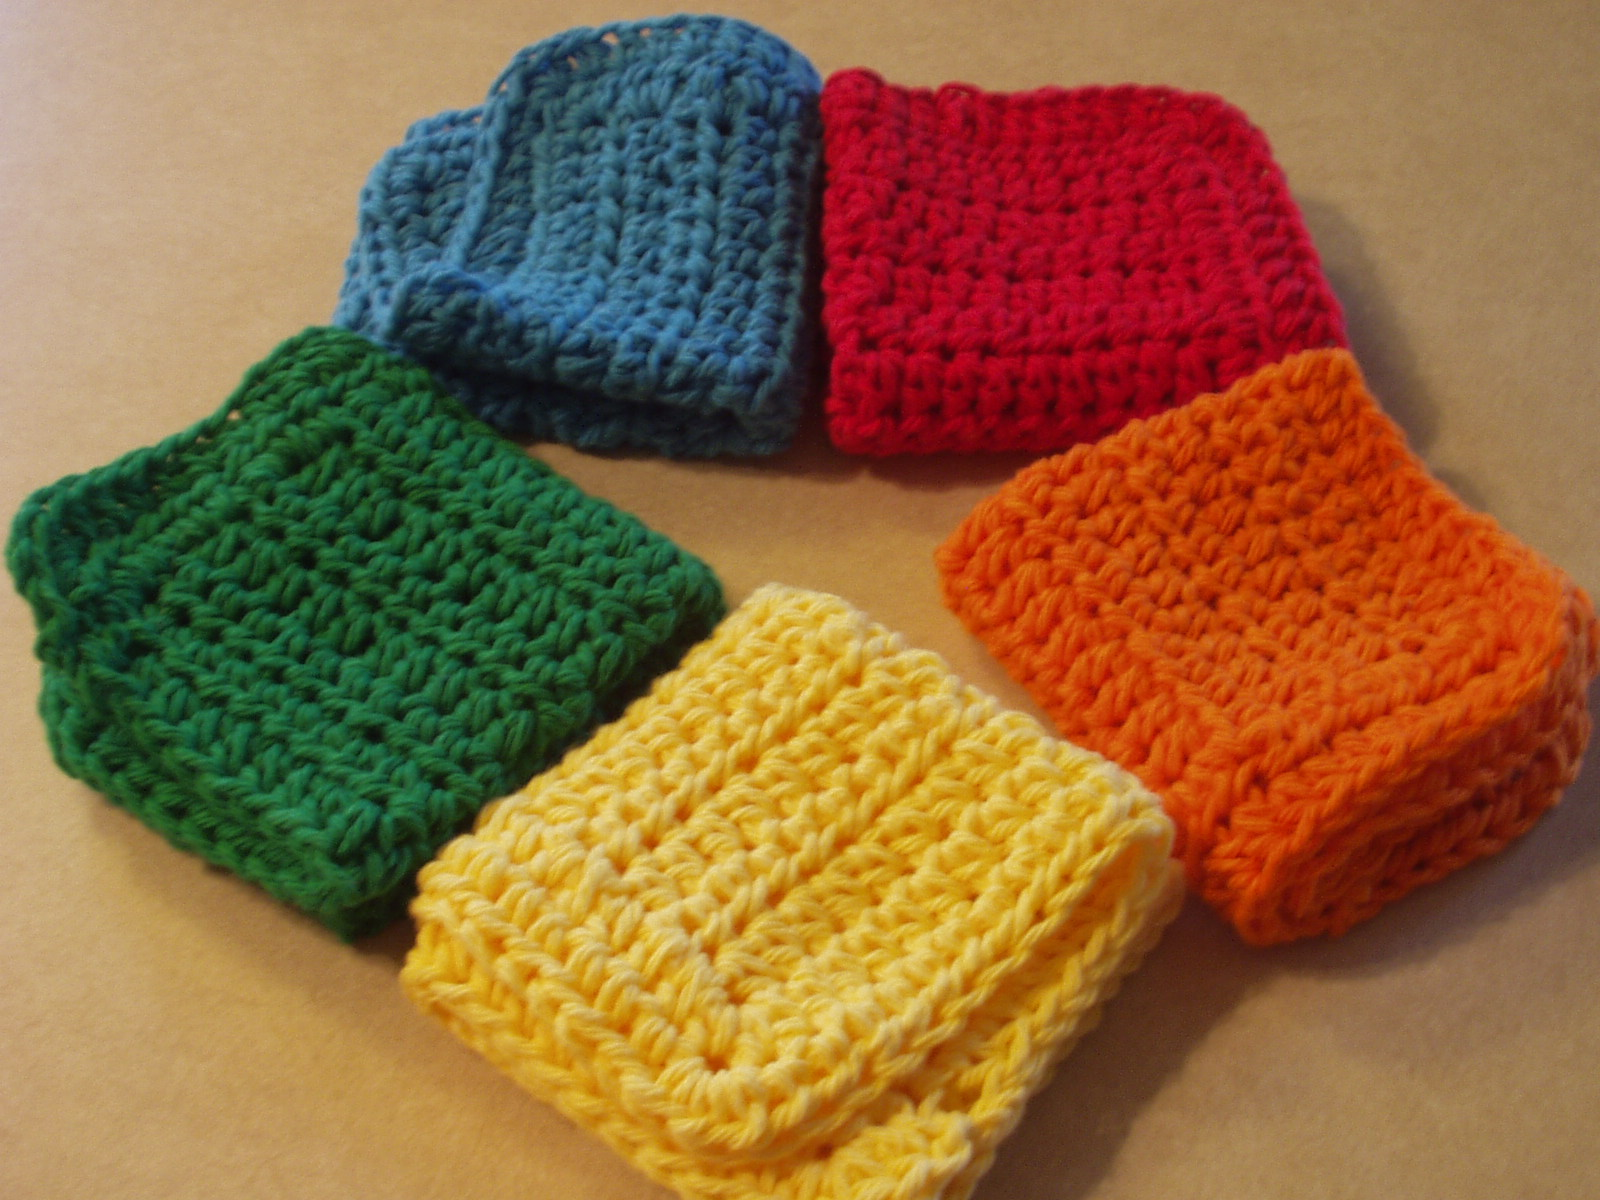 Free Crochet Pattern For Easy Dishcloth : EASY CROCHET DISHCLOTH PATTERNS Free Patterns